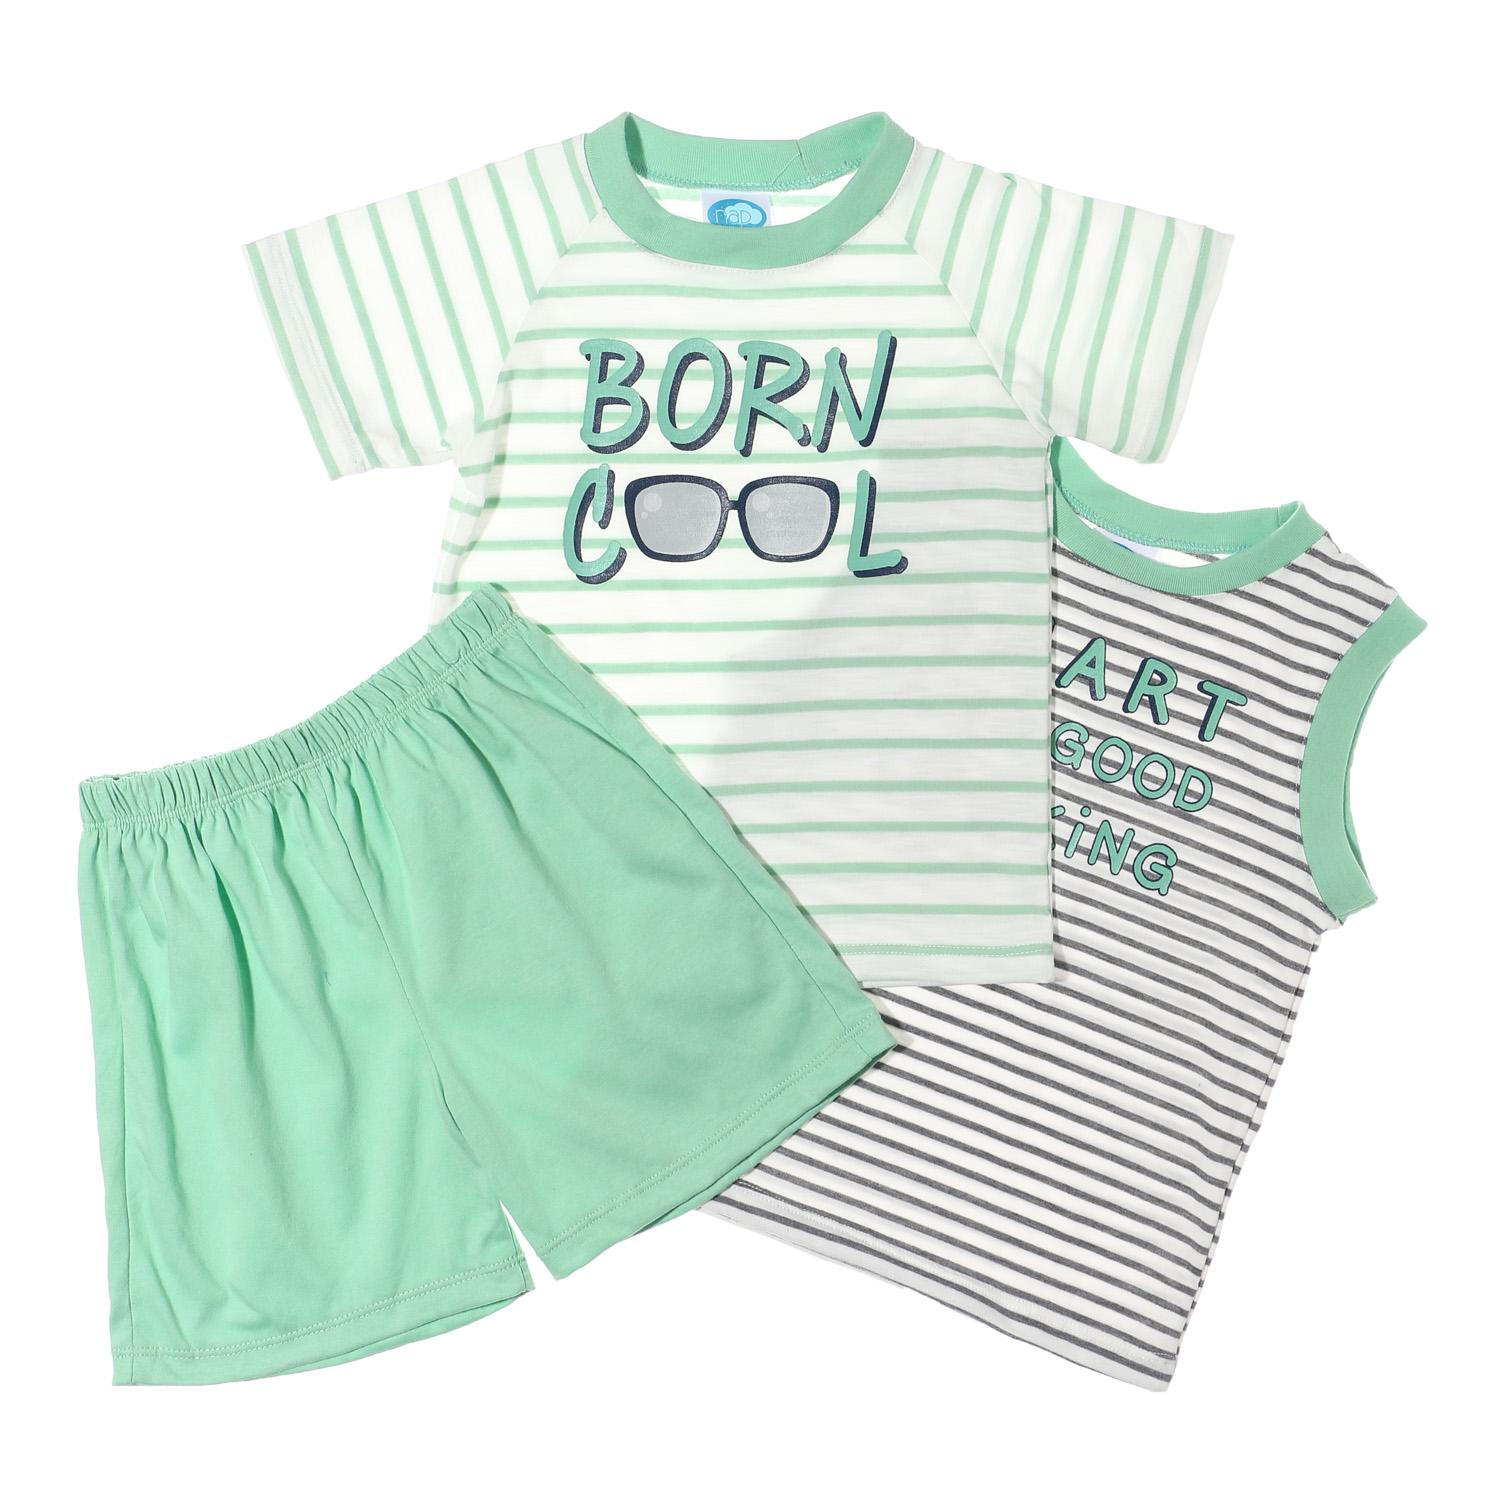 5c8fc46d4 Baby Clothes for sale - Baby Clothing Online Deals & Prices in ...